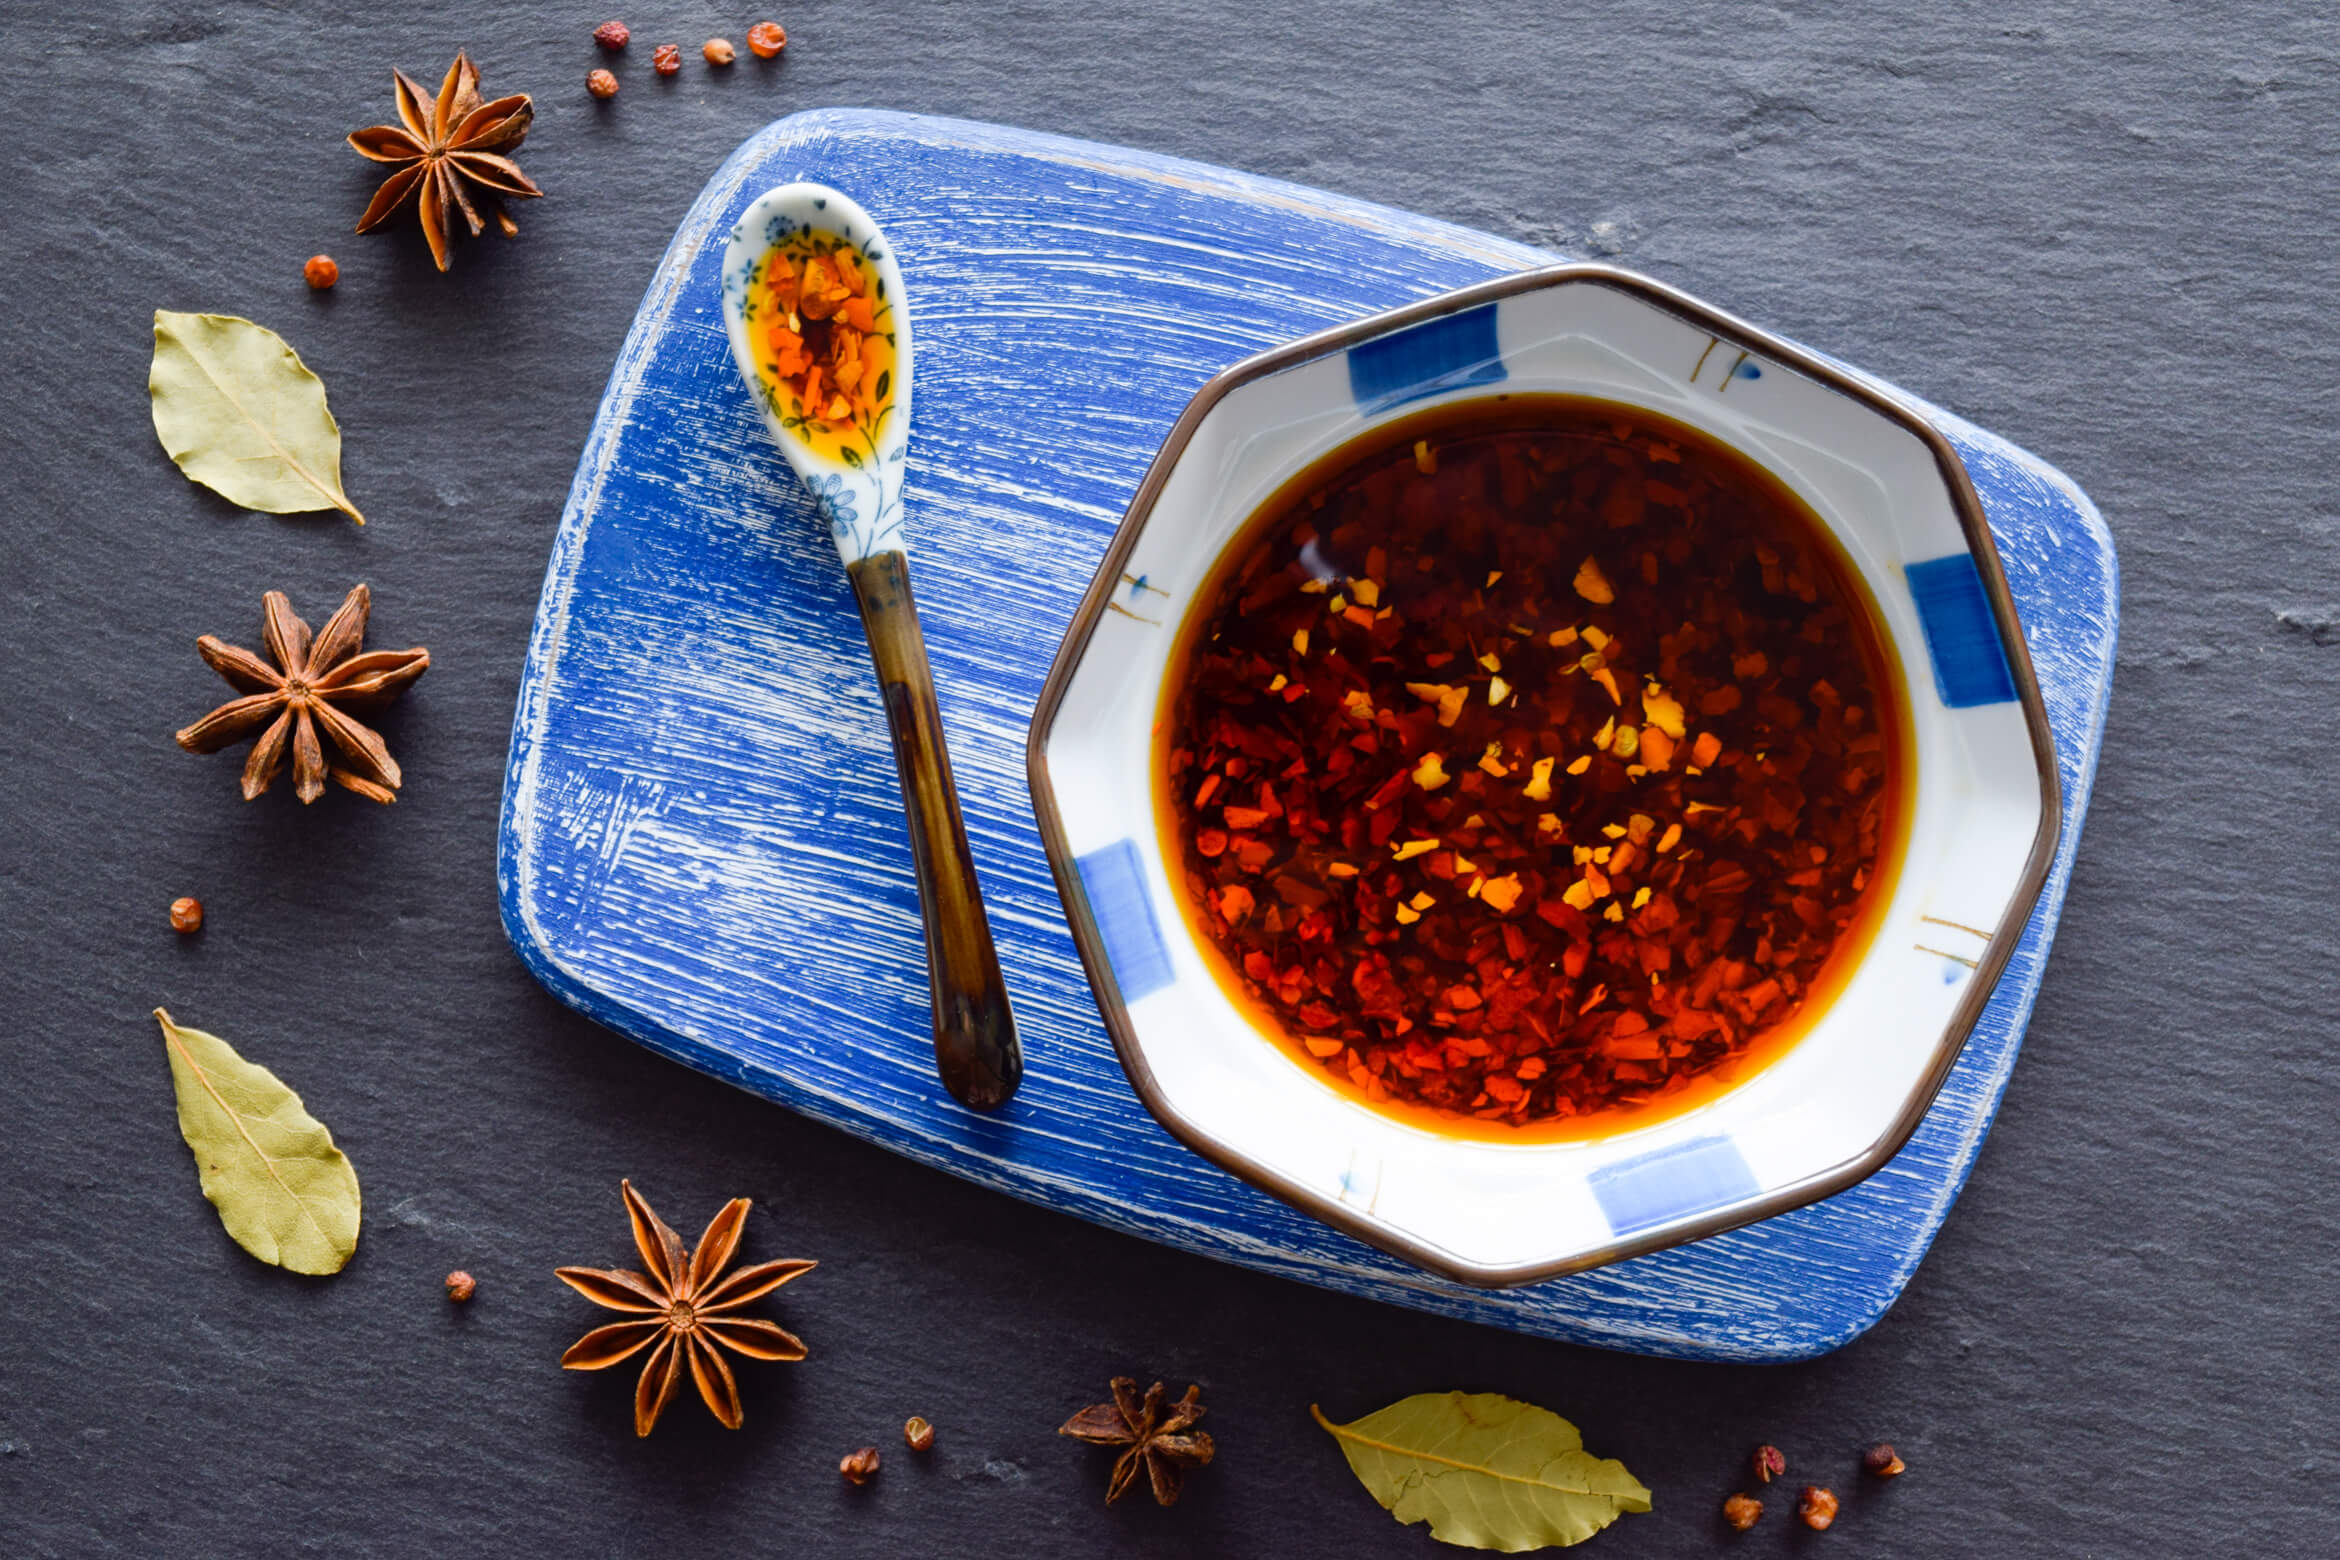 Sassy n' Sizzling Sichuan Chili Oil